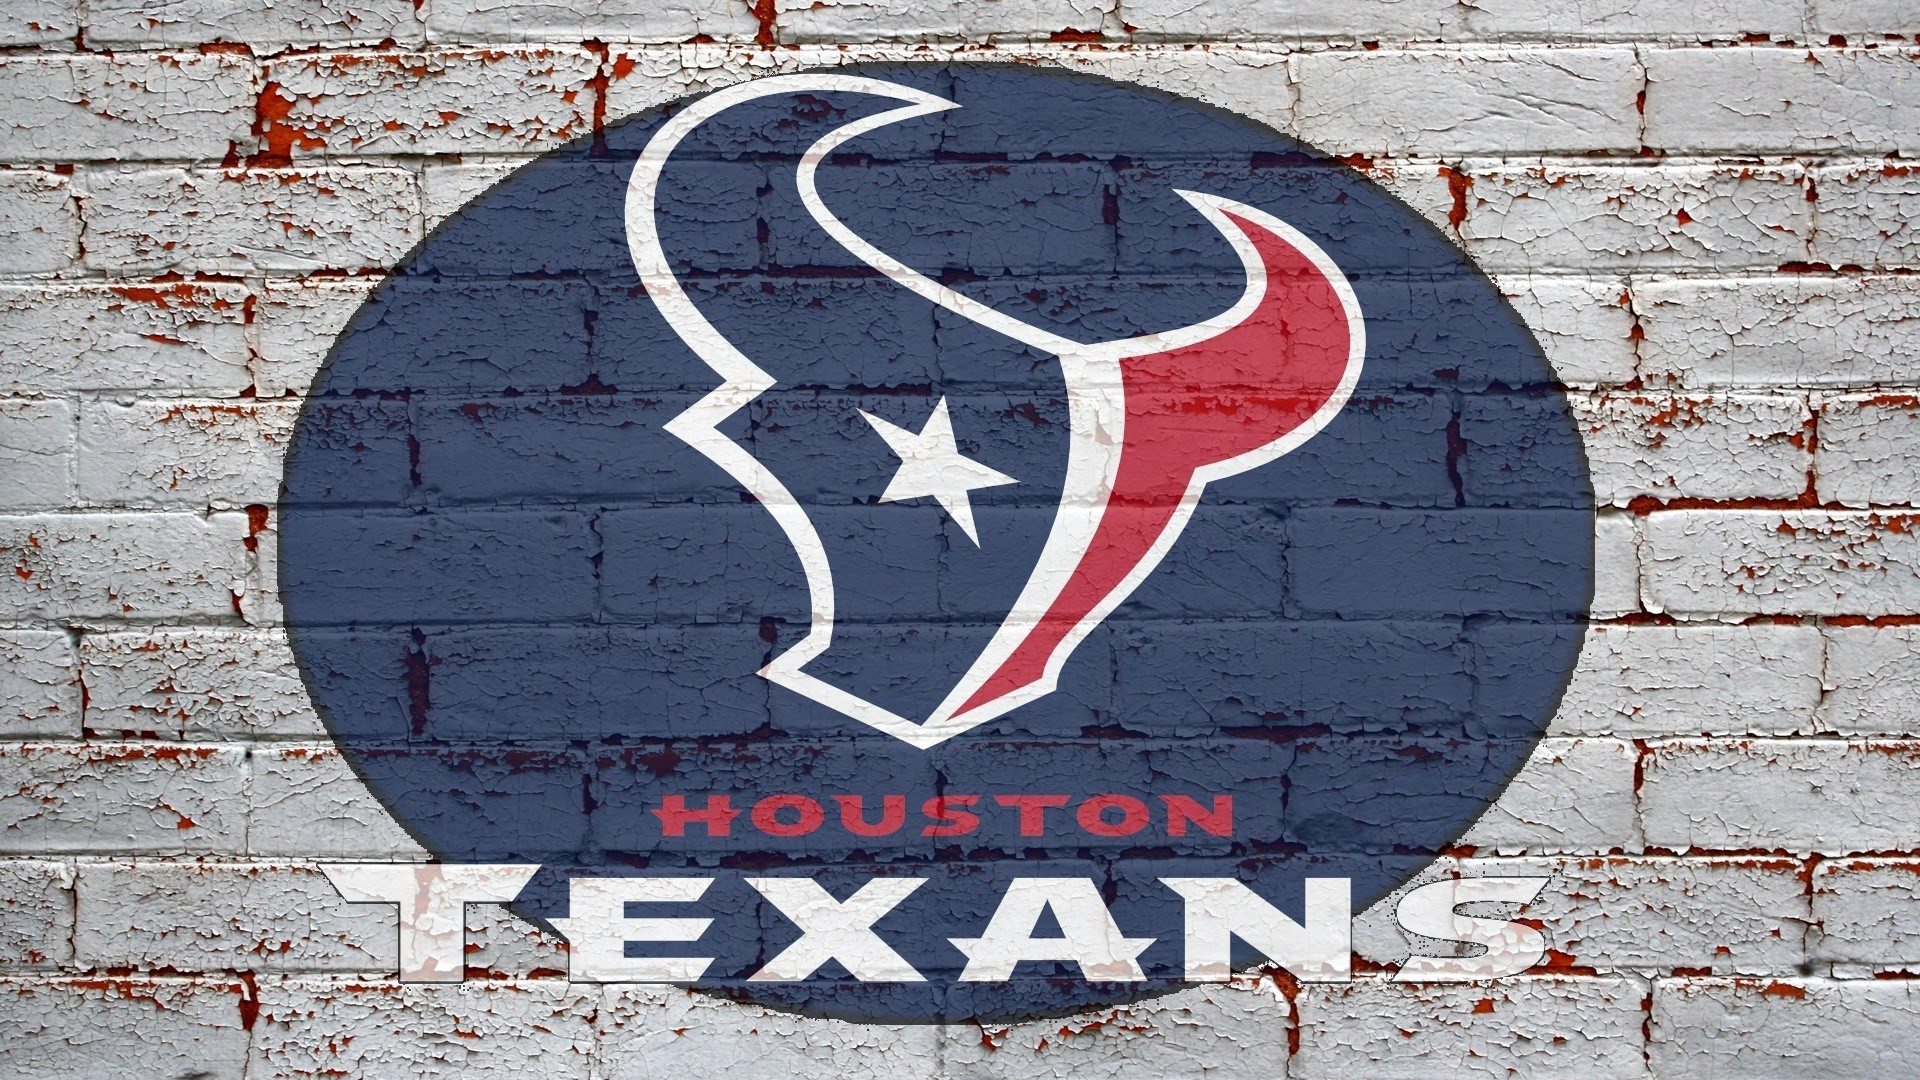 1920x1080 1920 x 1080px houston texans wallpaper pack 1080p hd by Cartwright WilKinson